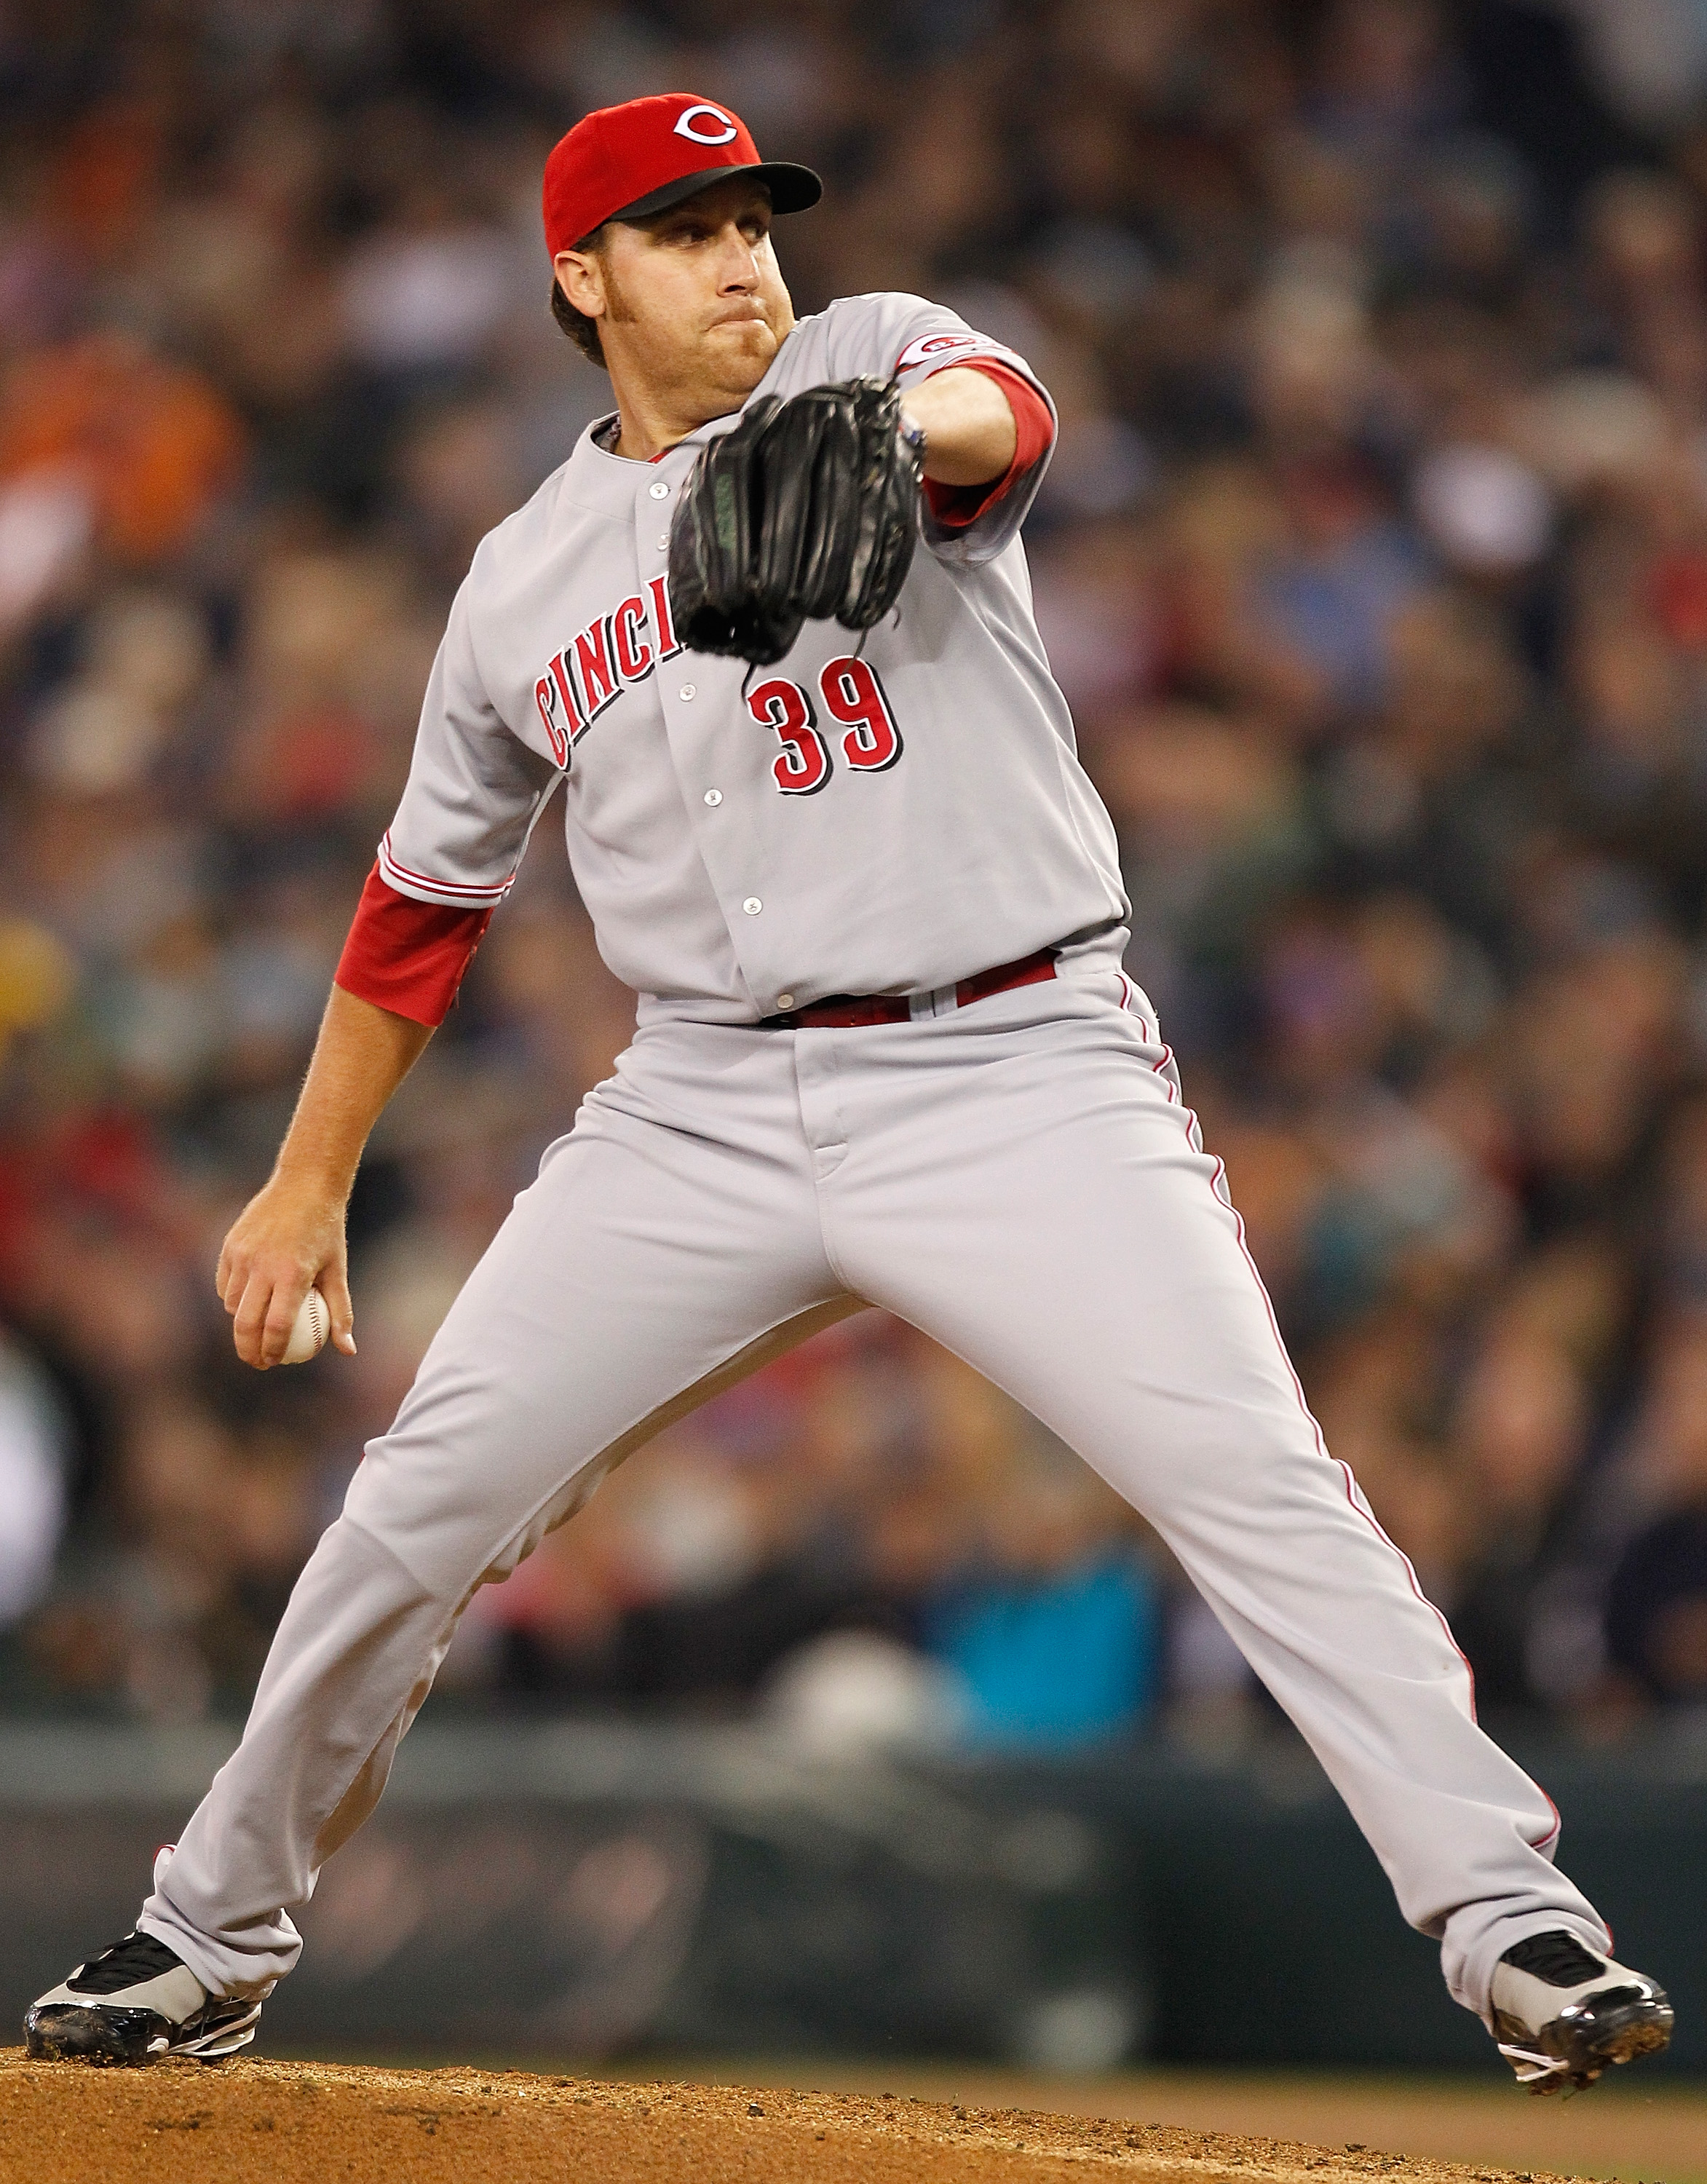 SEATTLE - JUNE 20:  Starting pitcher Aaron Harang #39 of the Cincinnati Reds pitches against the Seattle Mariners on June 20, 2010 at Safeco Field in Seattle, Washington. The Mariners defeated the Reds 1-0. (Photo by Otto Greule Jr/Getty Images)